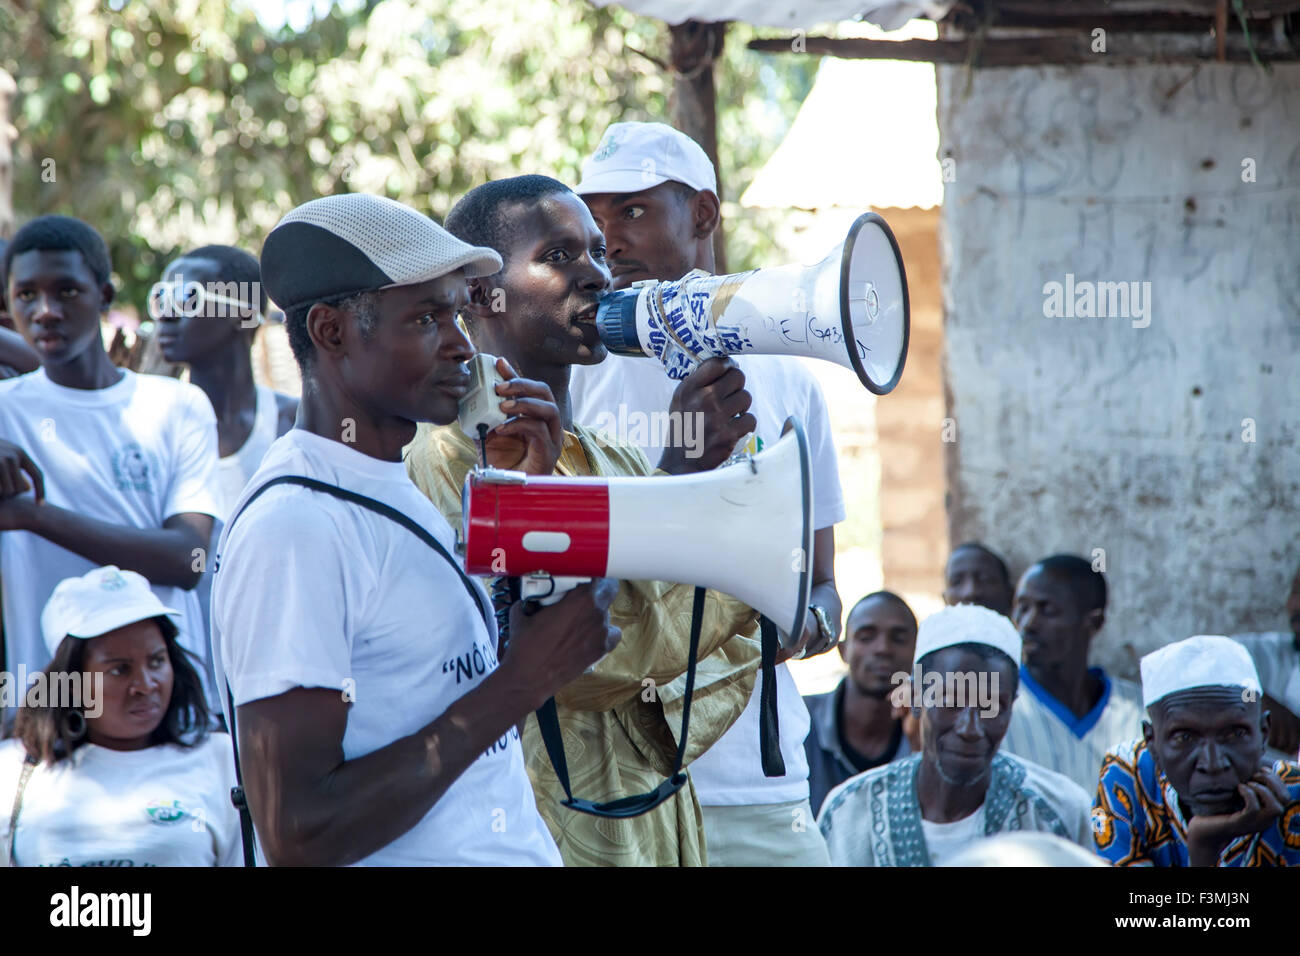 African NGO activists delivering a public lesson to village elders in rural Guinea-Bissau - Stock Image